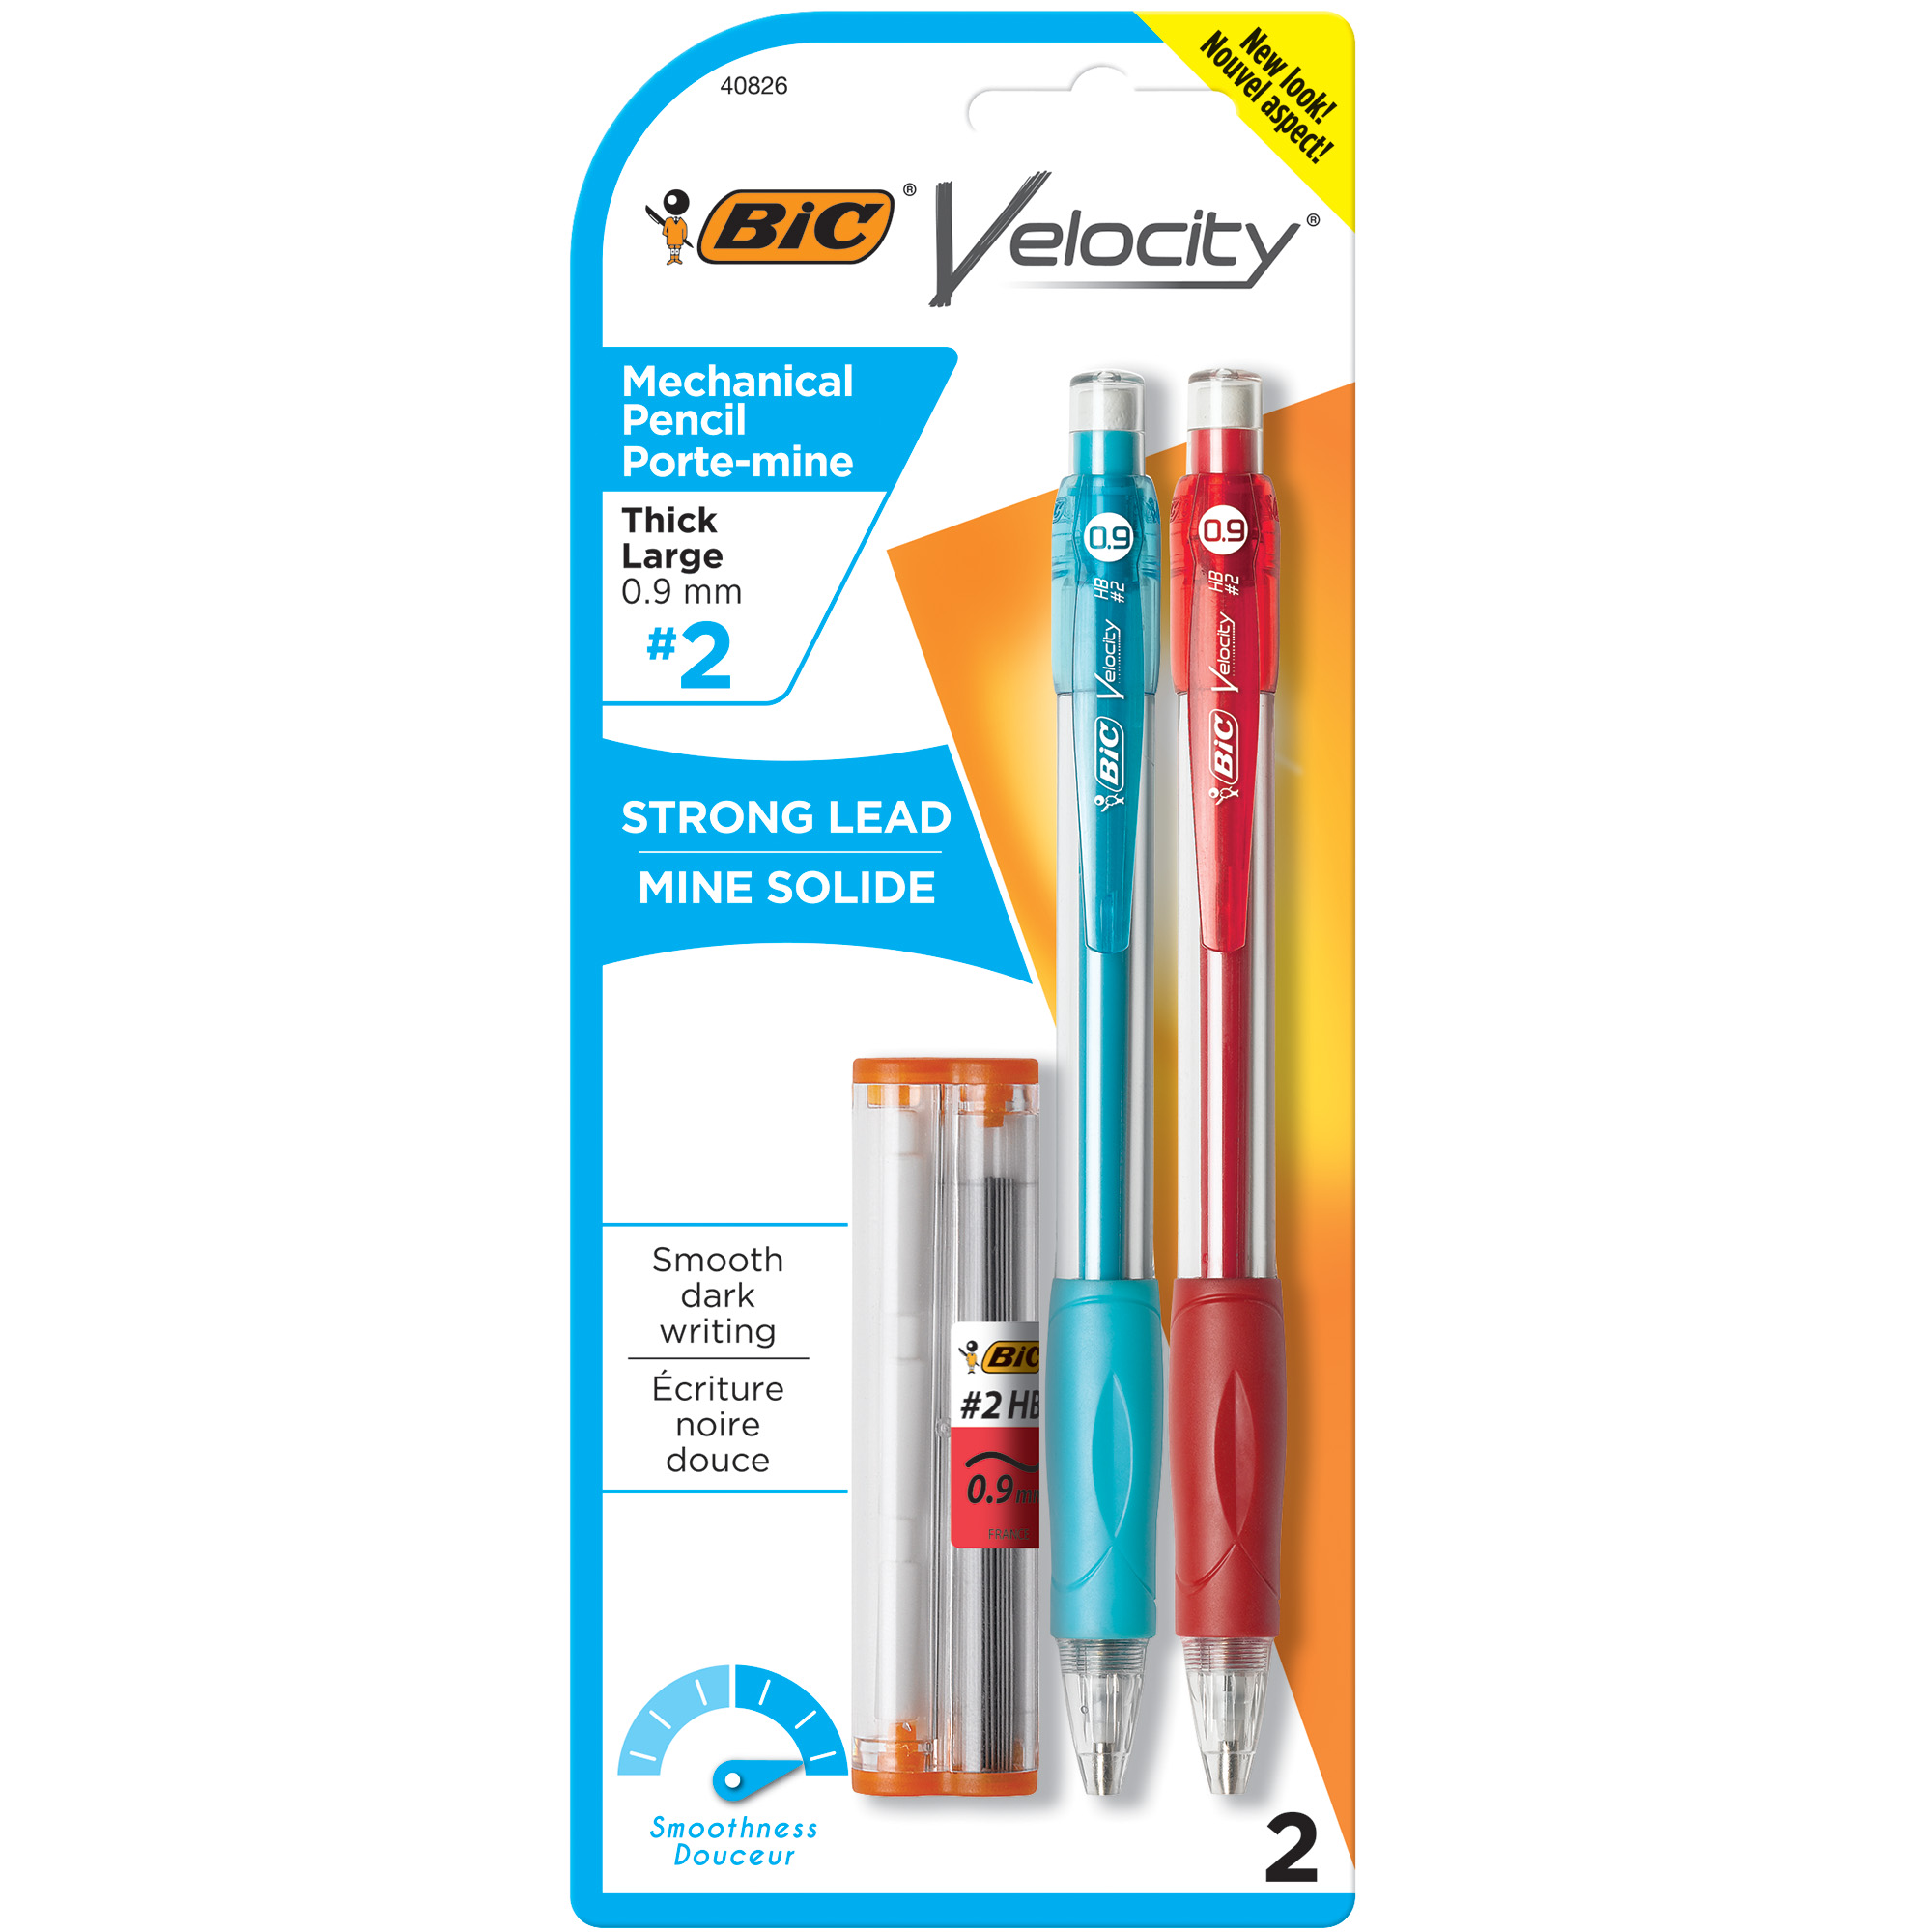 BIC Velocity Original Mechanical Pencil, Thick Point (0.9 mm), 2 Count